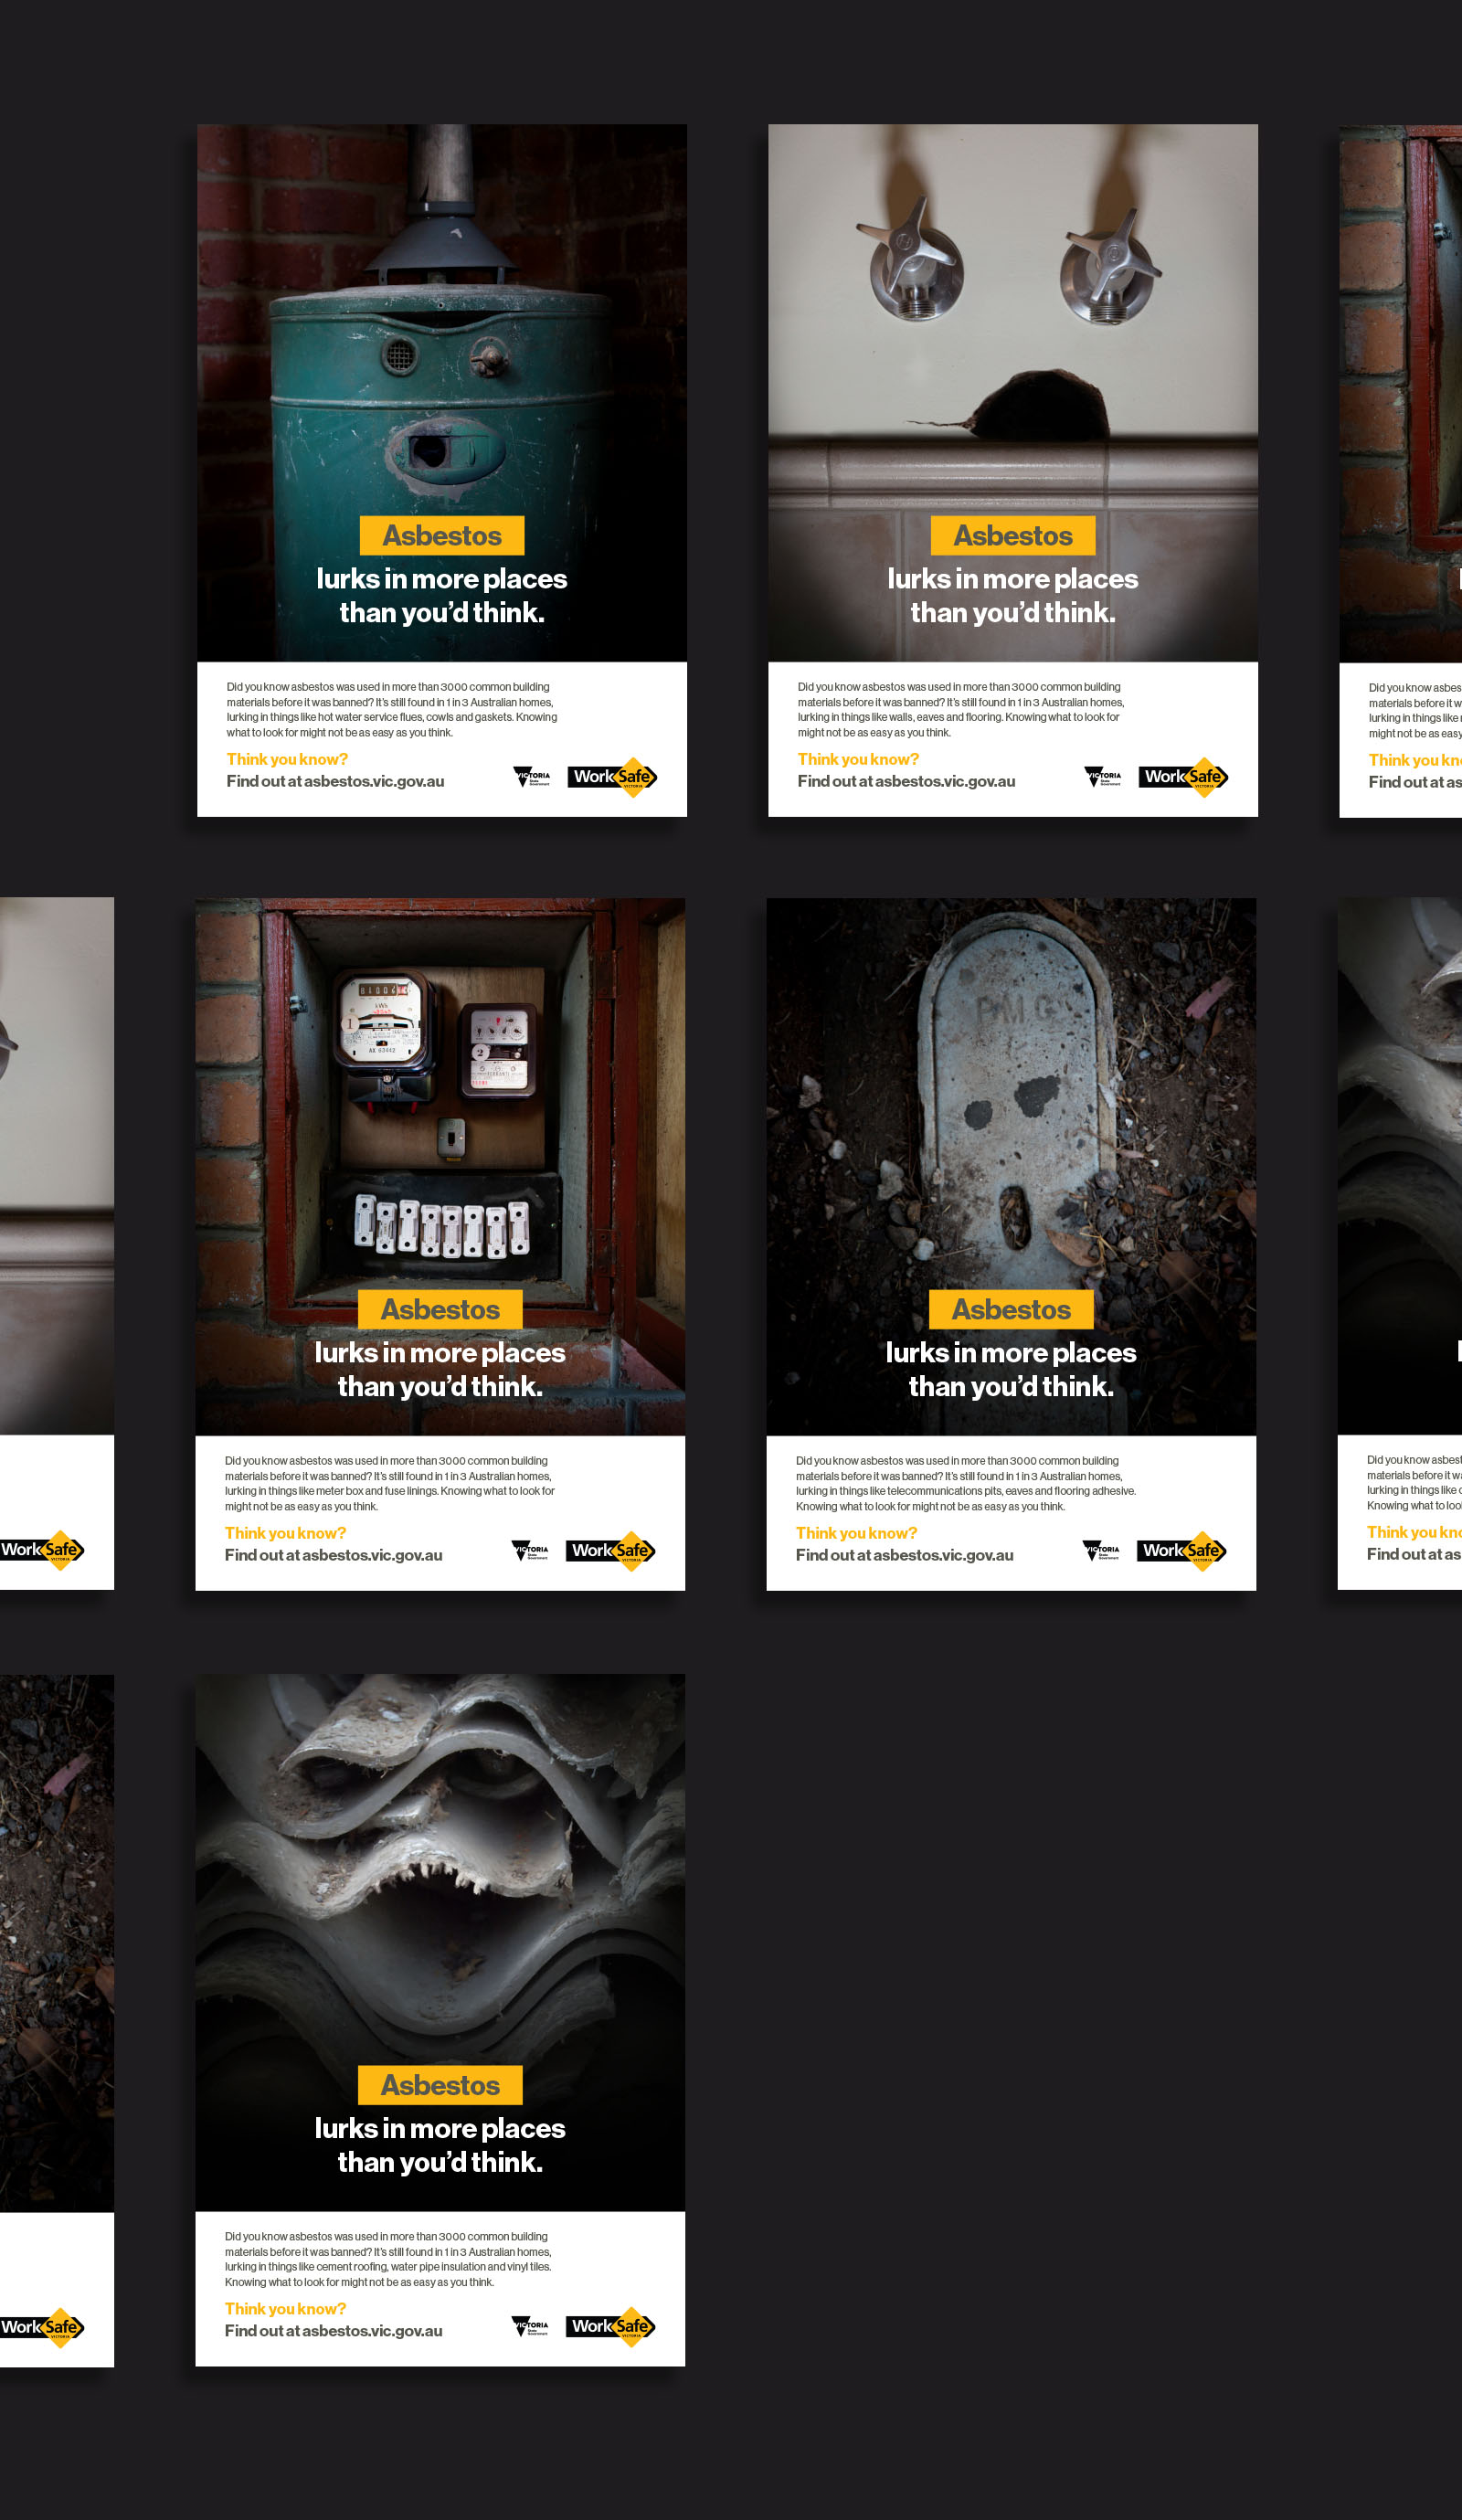 Worksafe Victoria Asbestos Campaign Imagery